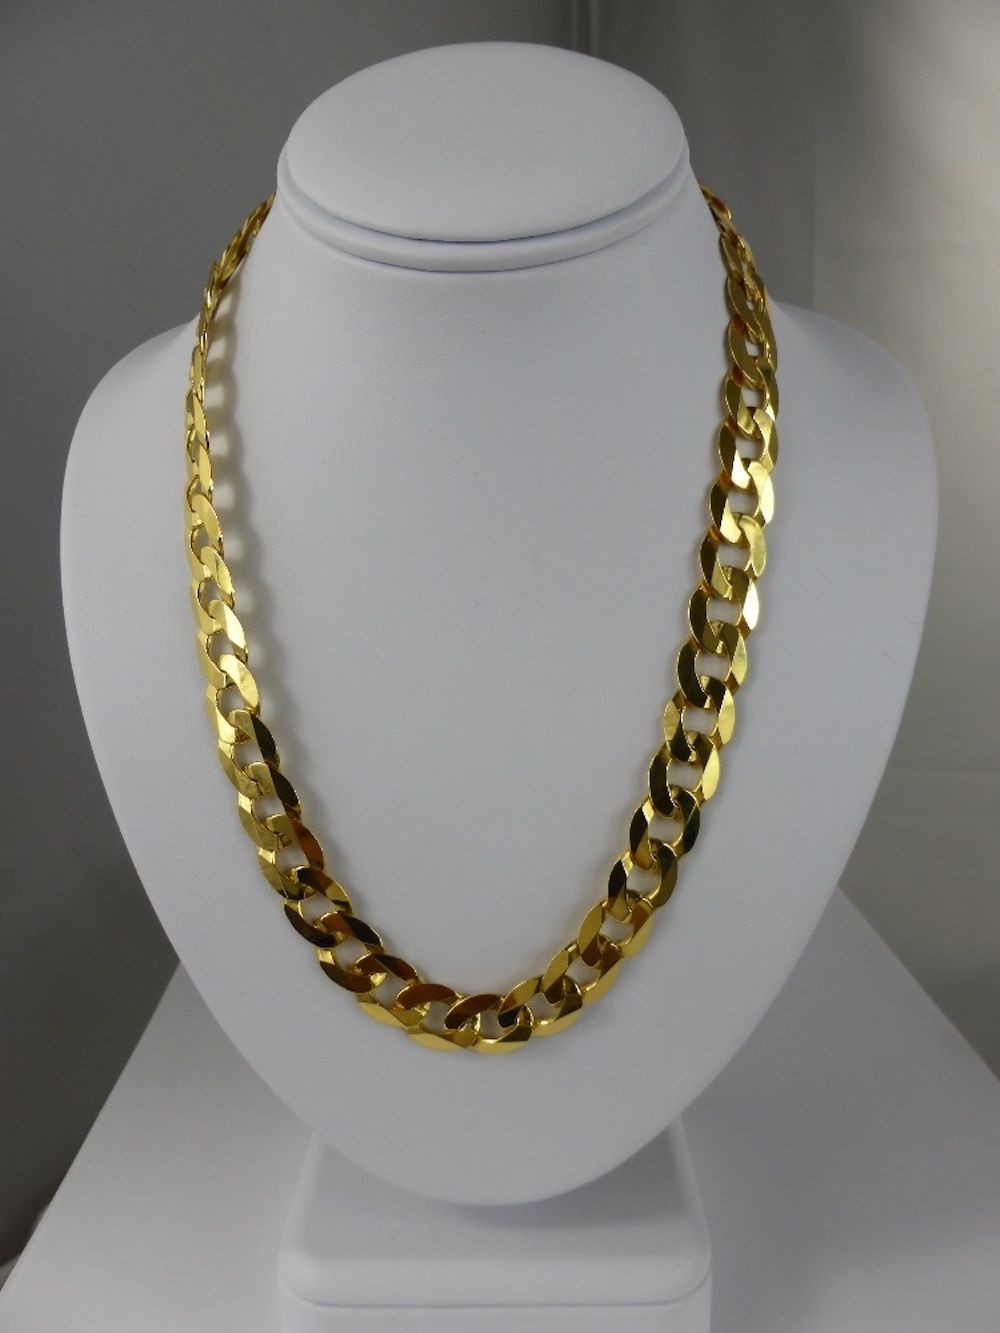 9ct Gold Curb Link Neck Chain £520